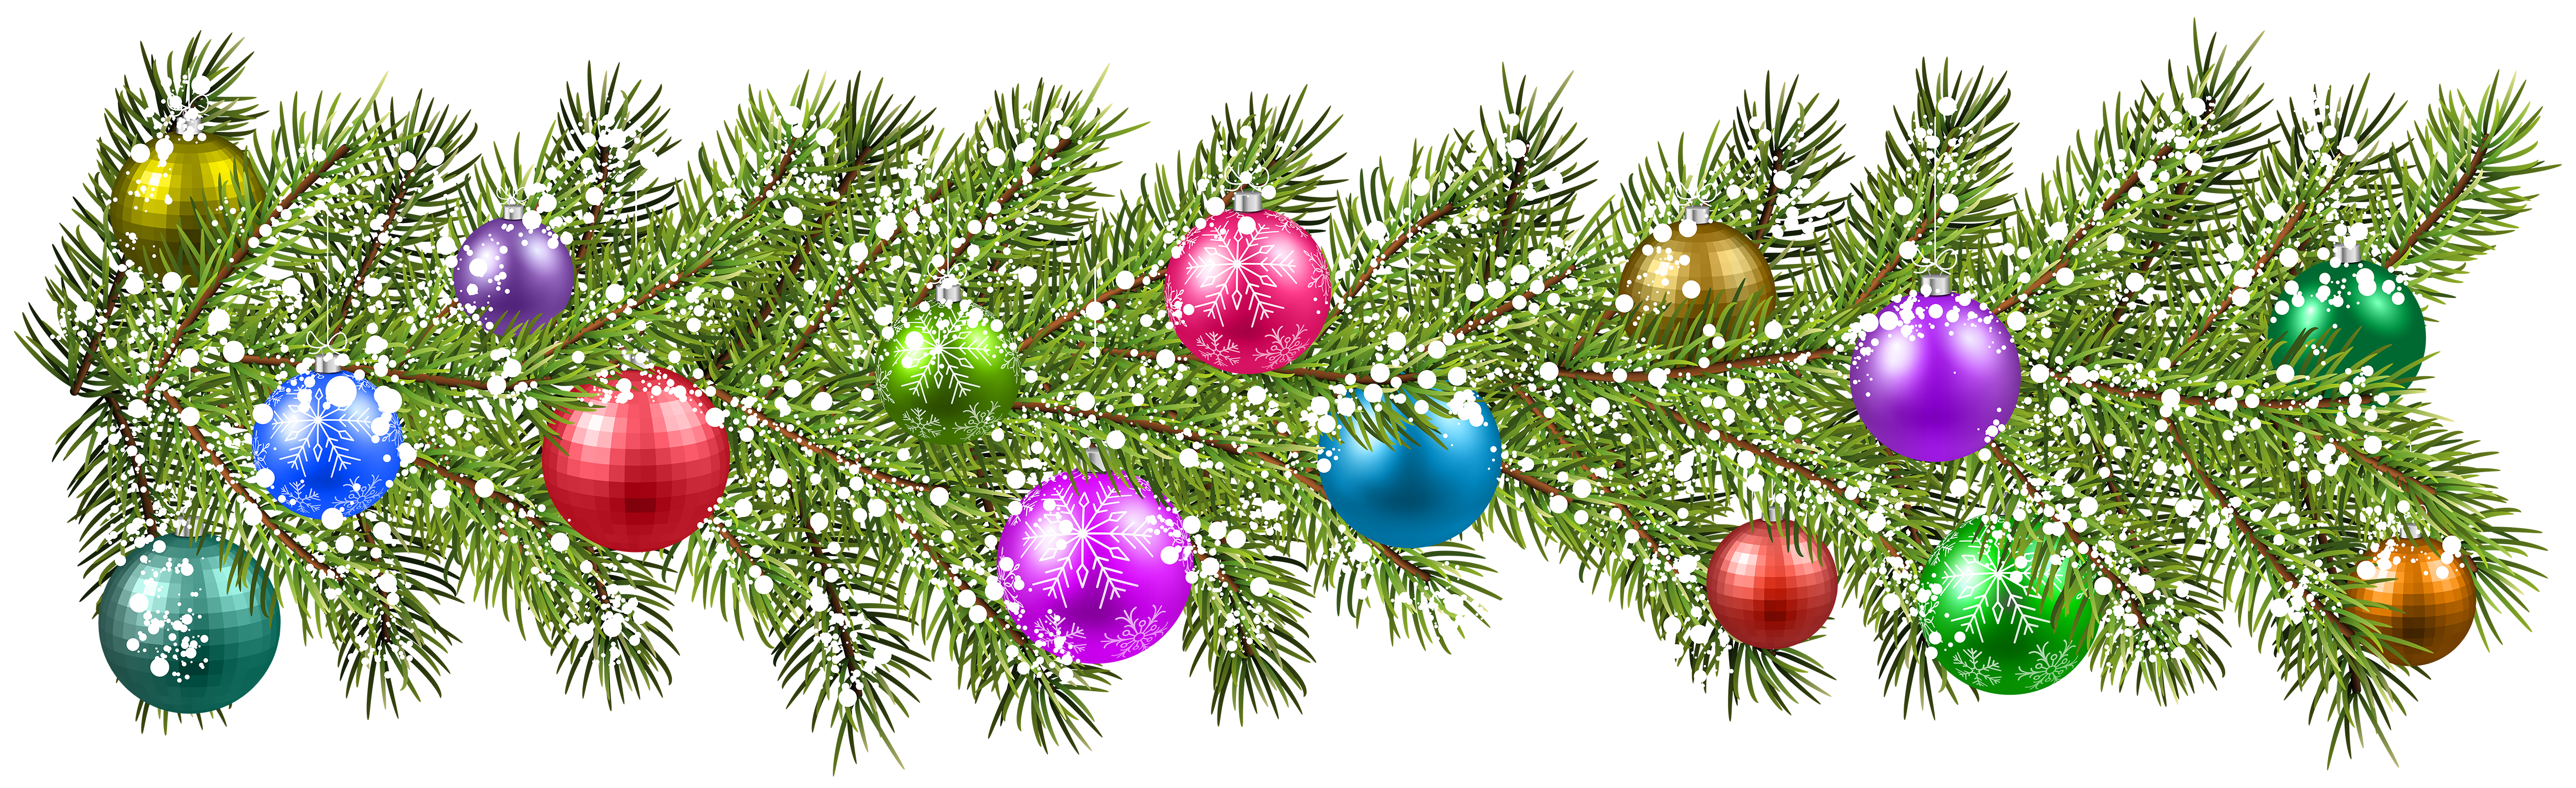 Christmas Pine Branches And Christmas Balls Png Clip Art Image Sunflower Art Christmas Balls Clip Art